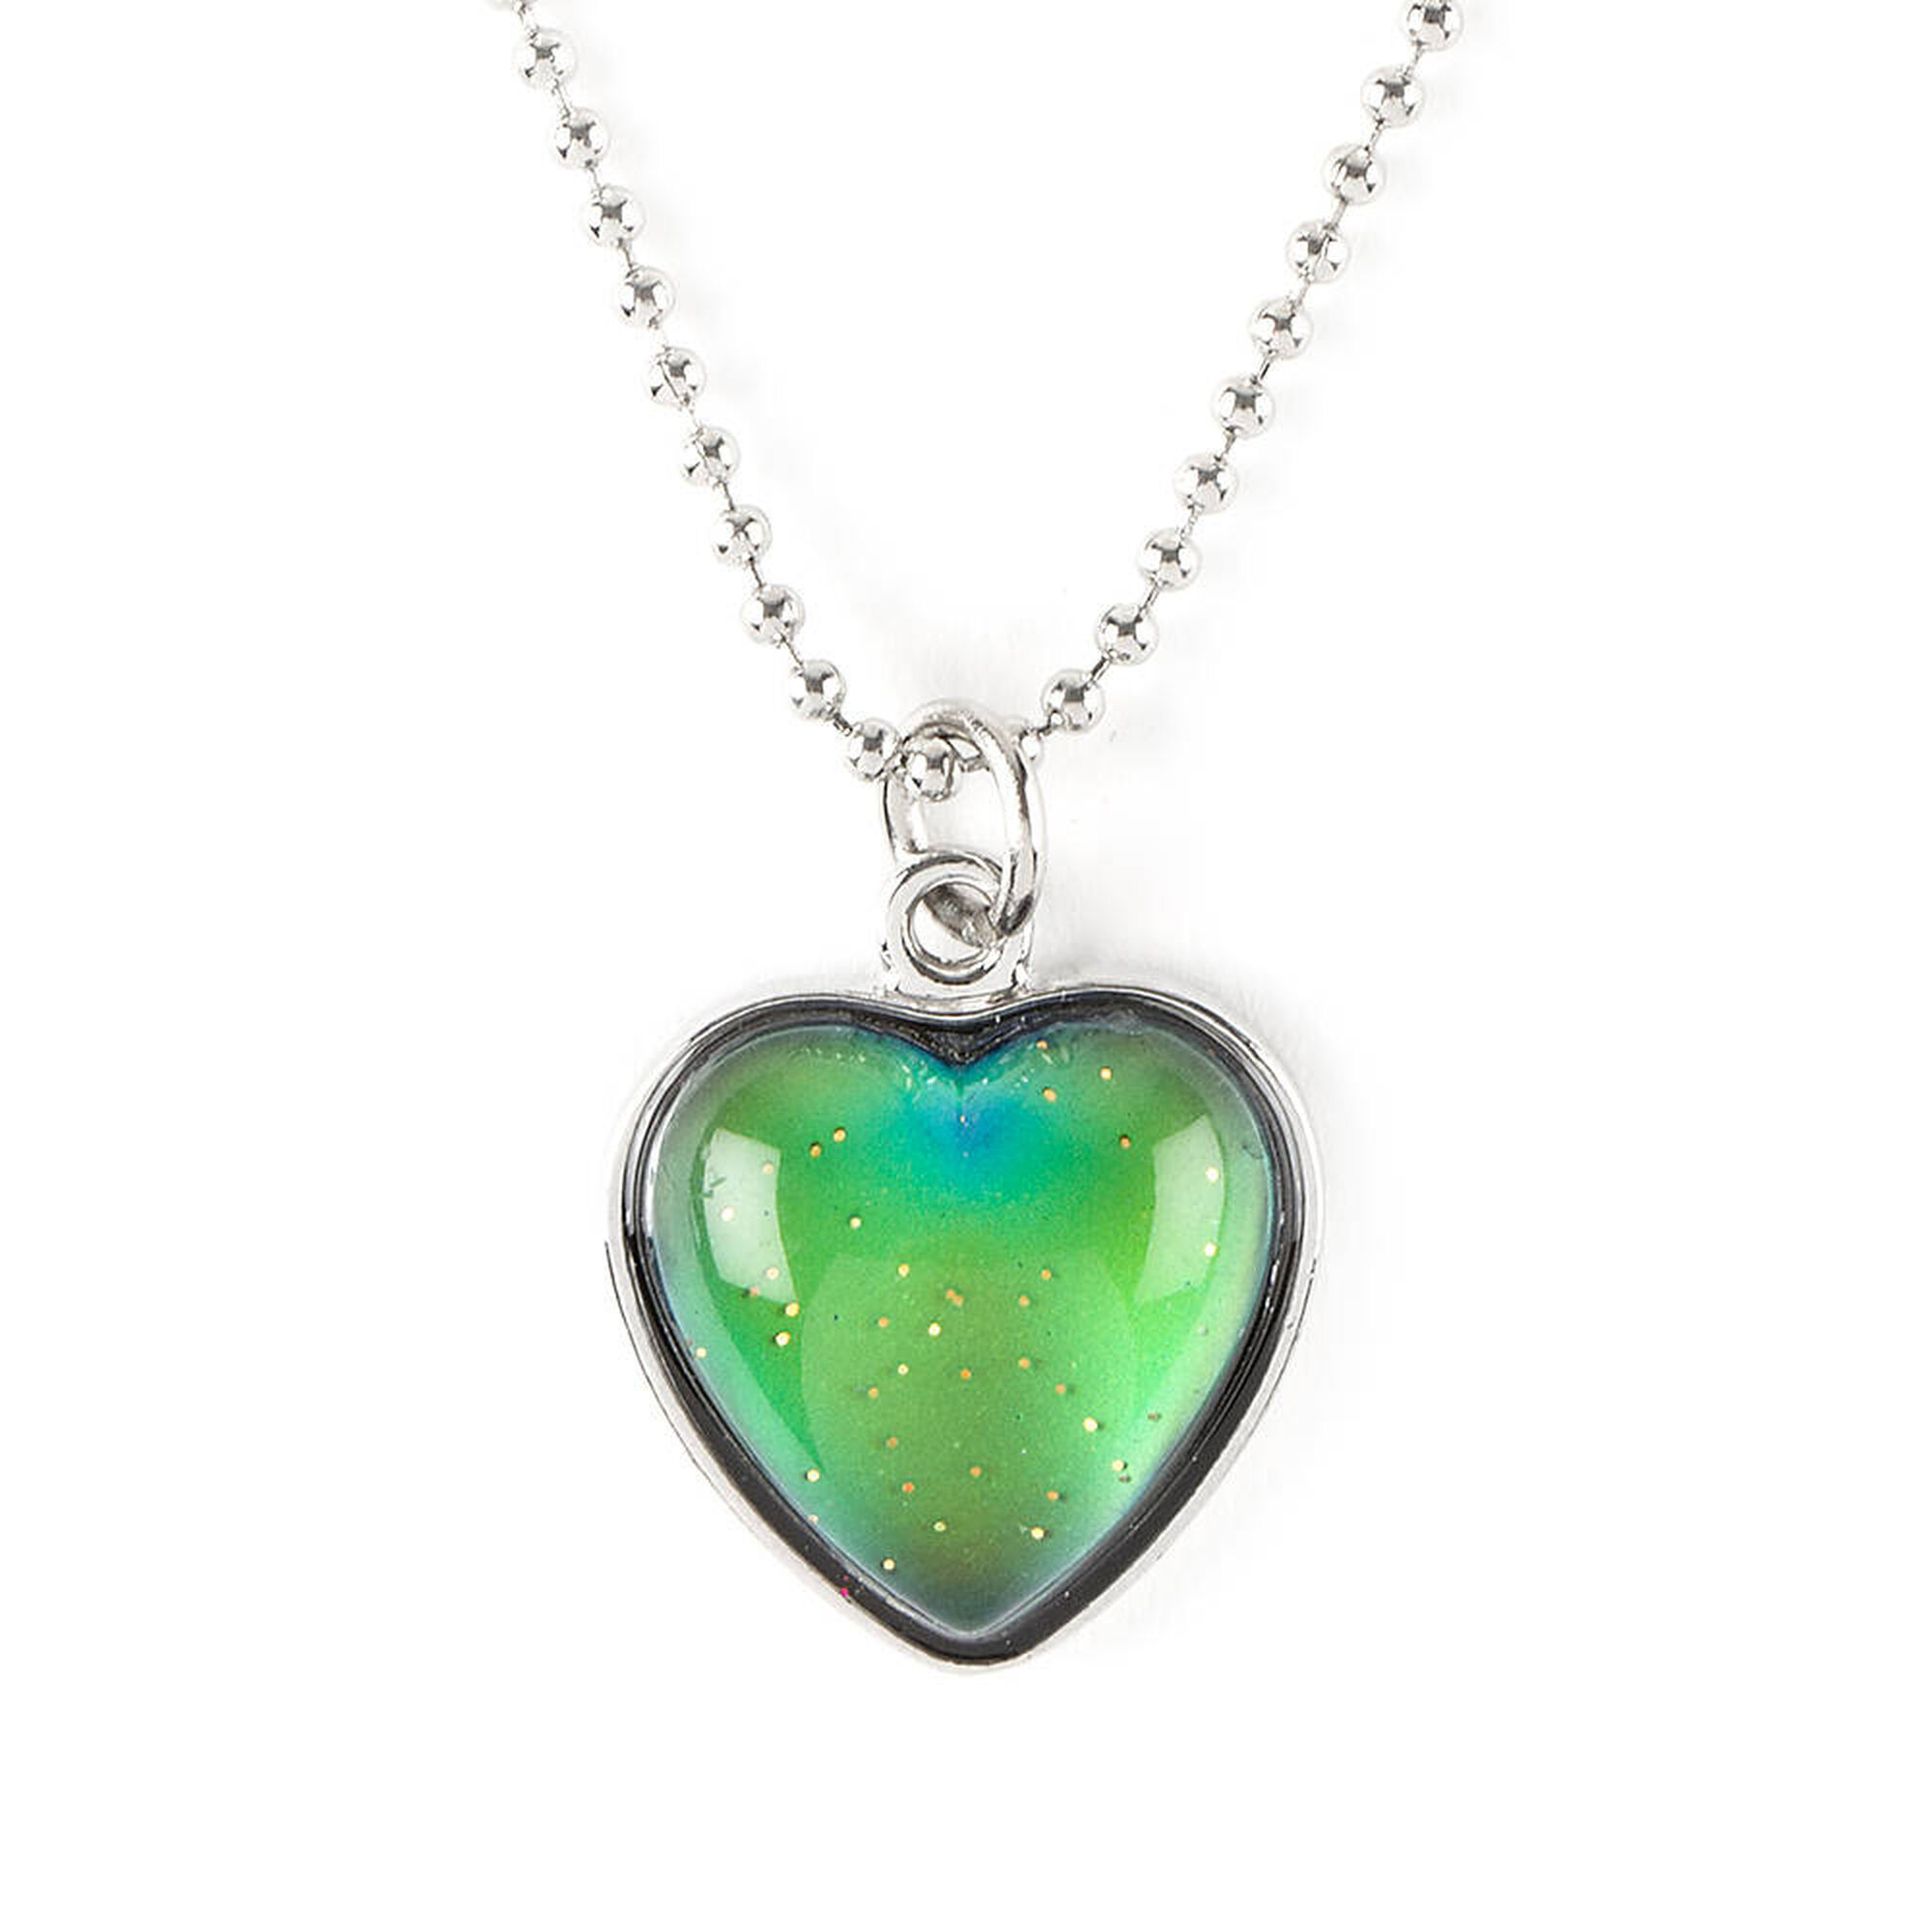 Mood heart pendant necklace claires us mood heart pendant necklace mozeypictures Image collections